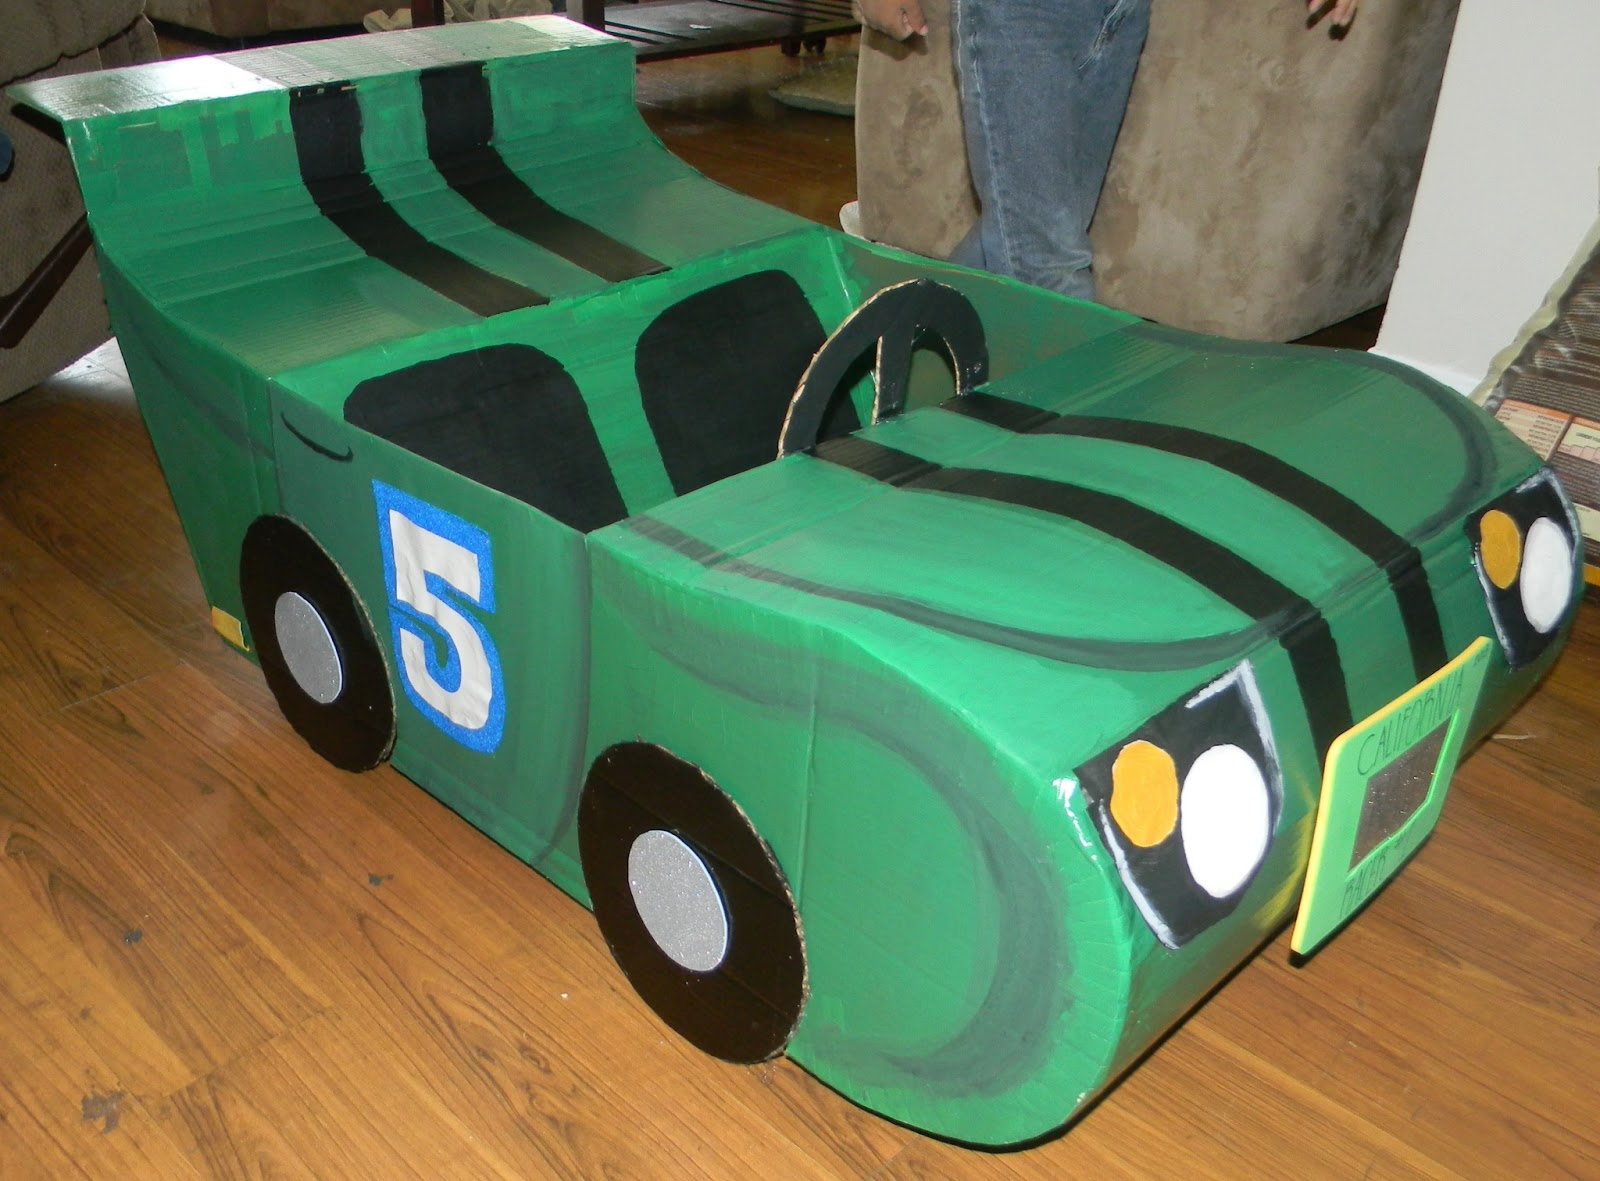 Word Of Mouth Lend Me Your Ear Craft Diy Cardboard Race Car